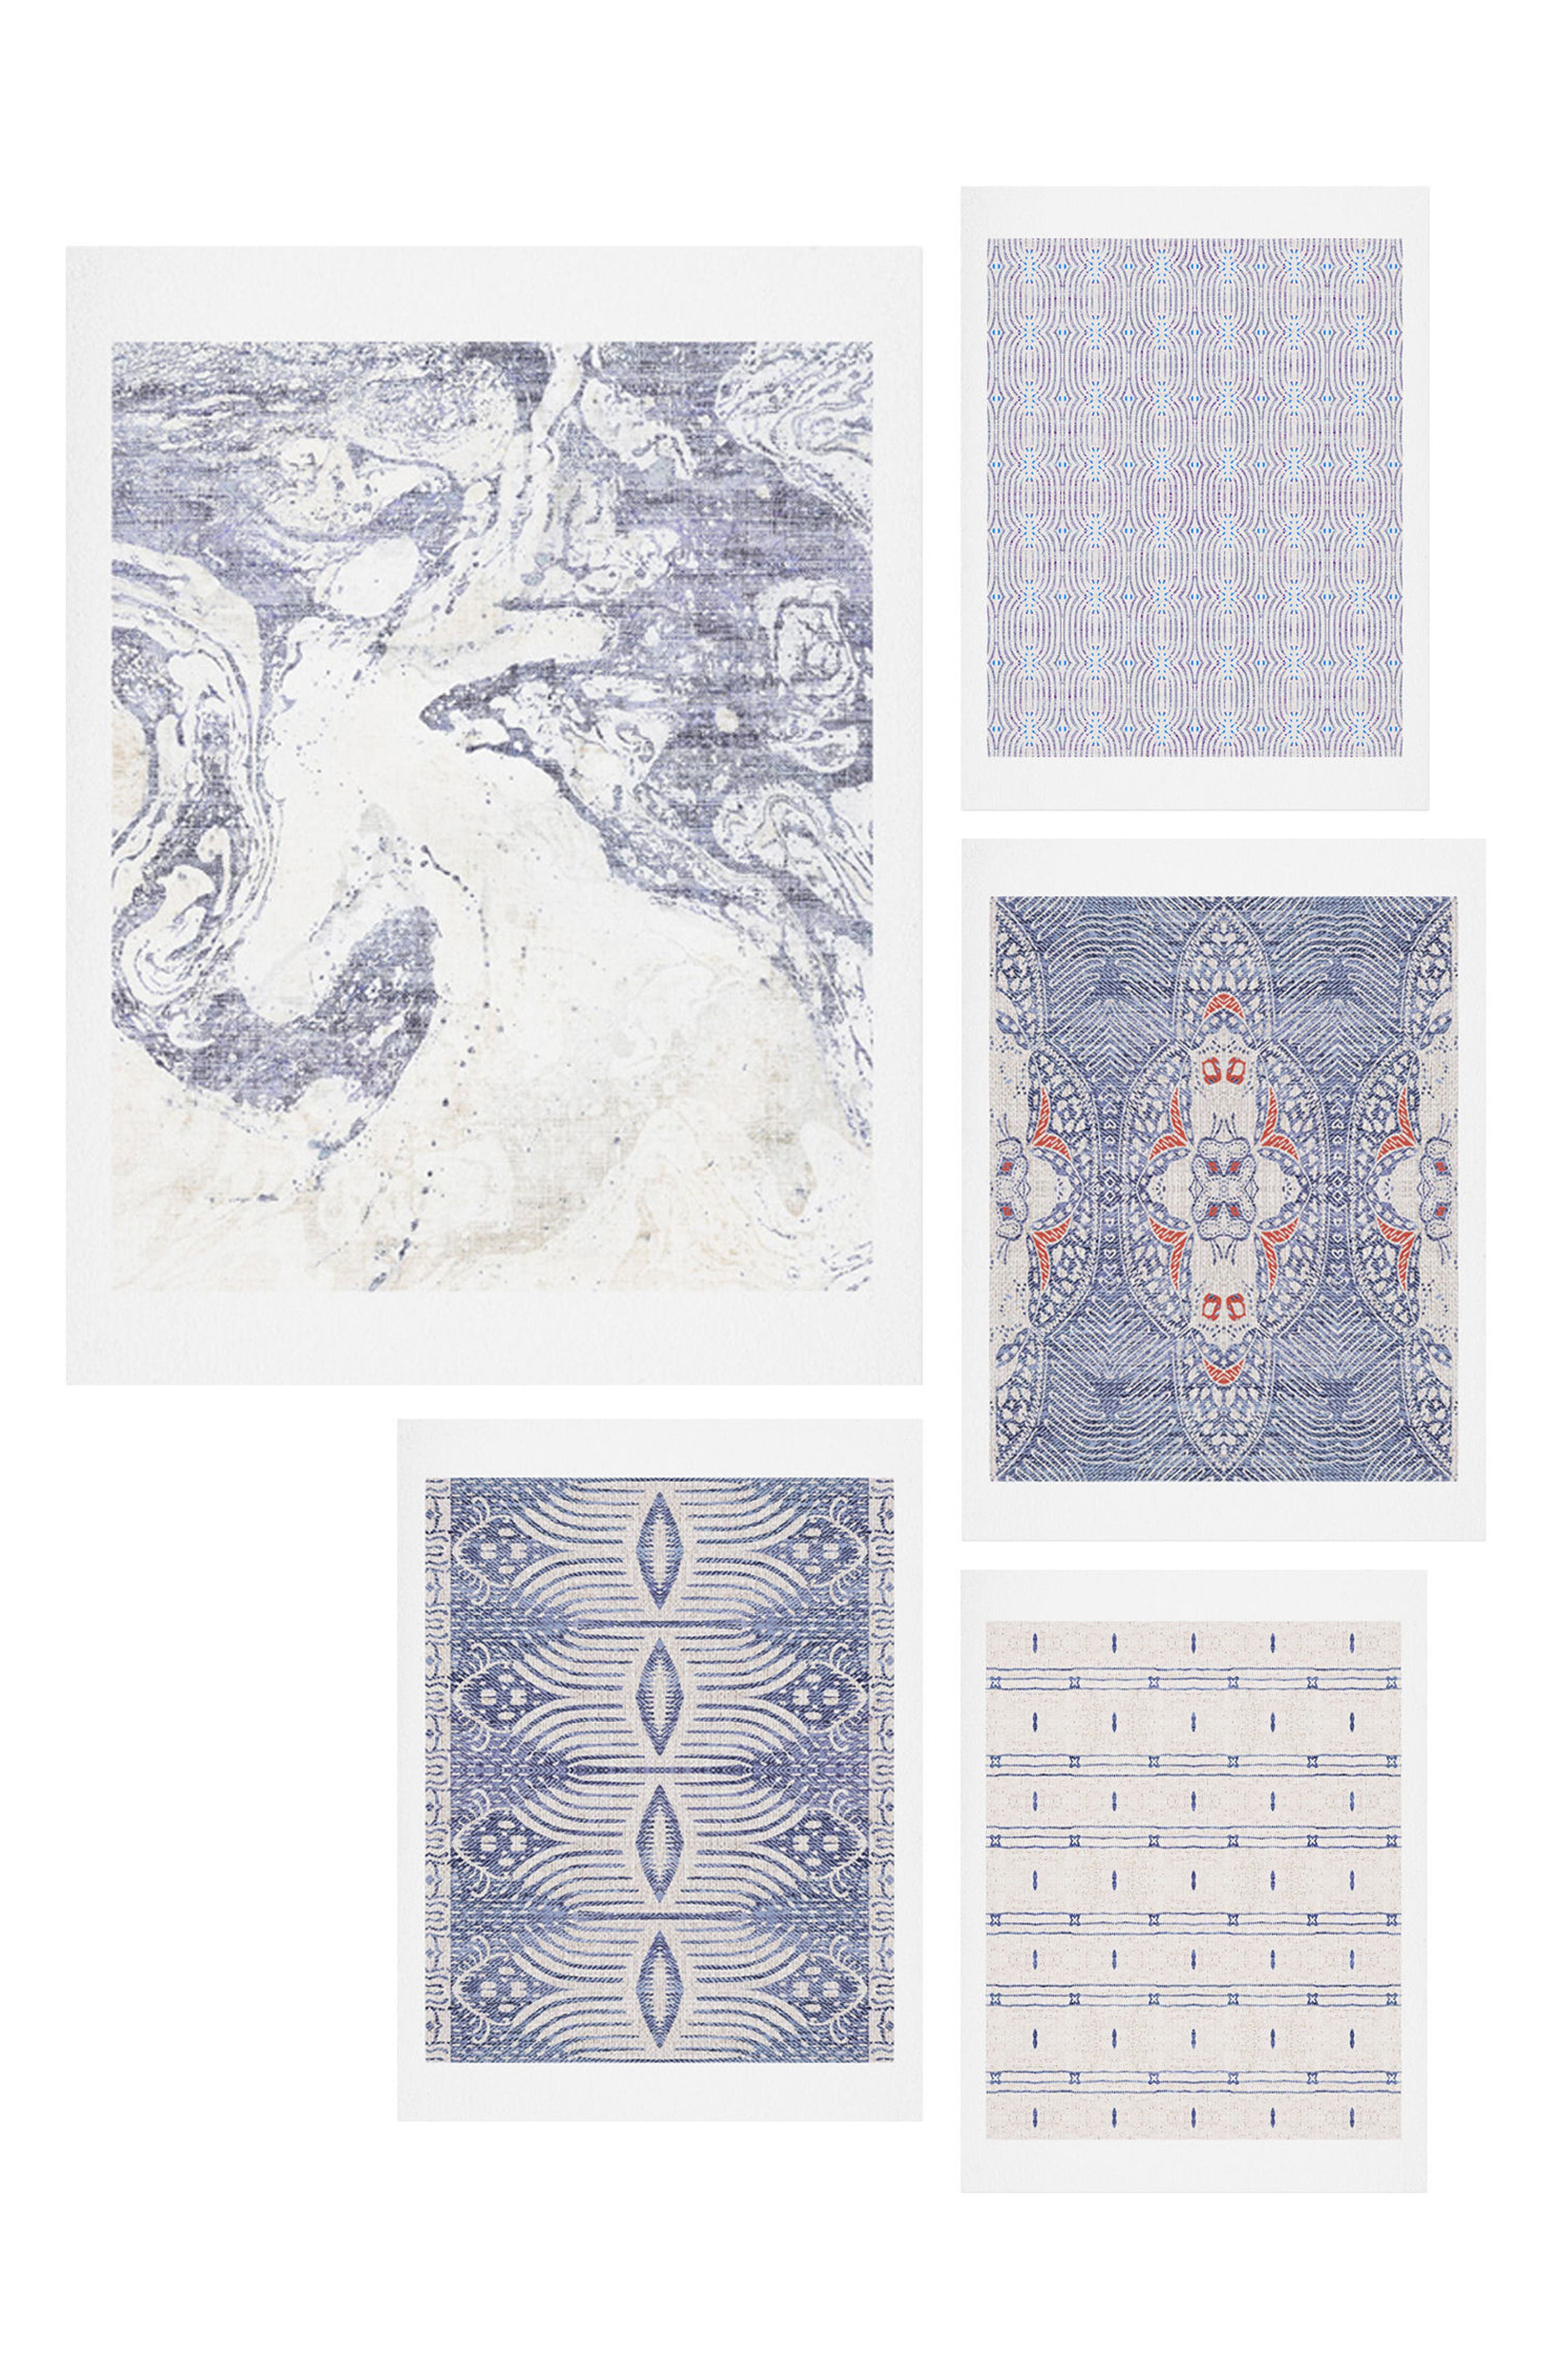 DENY Designs French Linen Five-Piece Gallery Wall Art Print Set